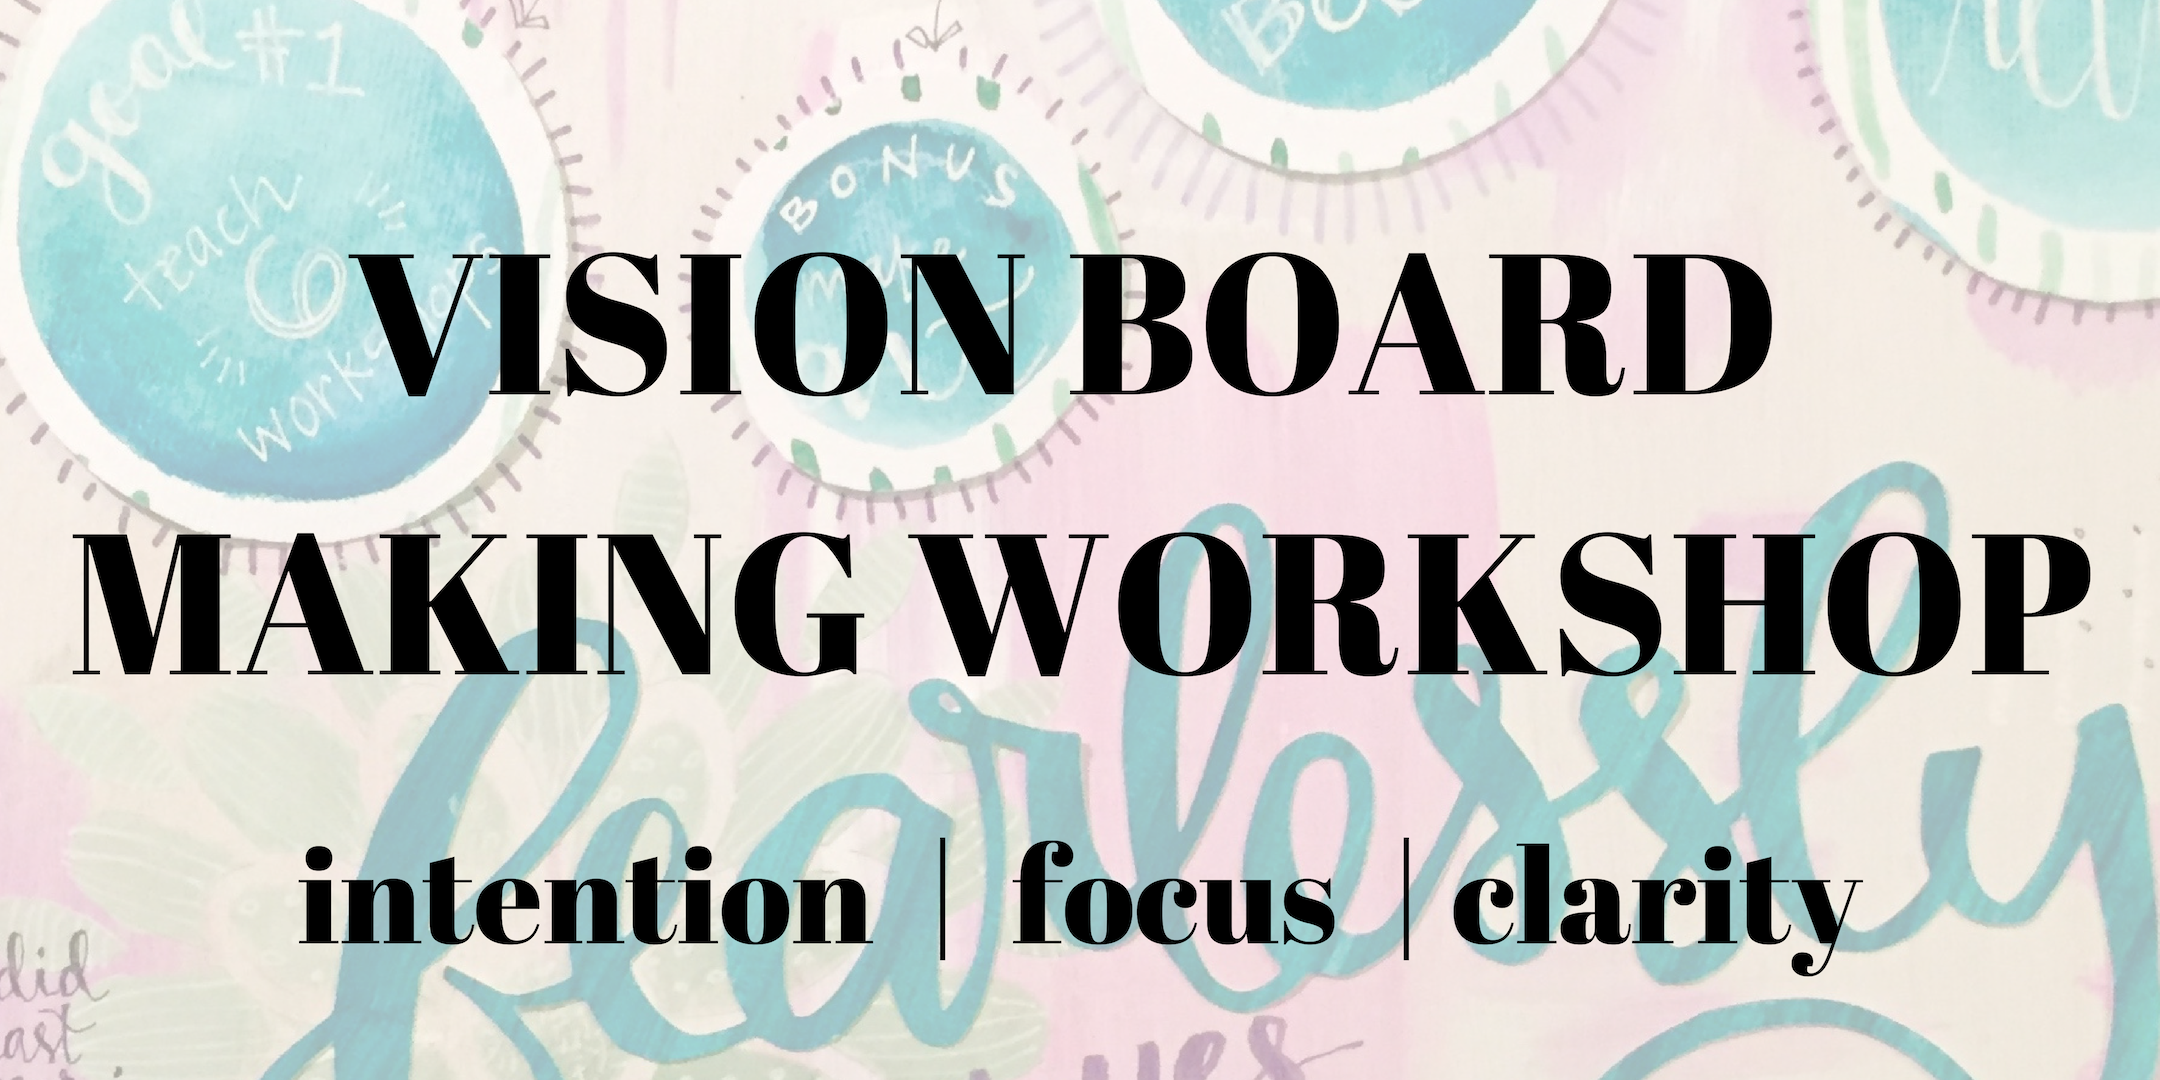 VISION BOARD MAKING WORKSHOP.png